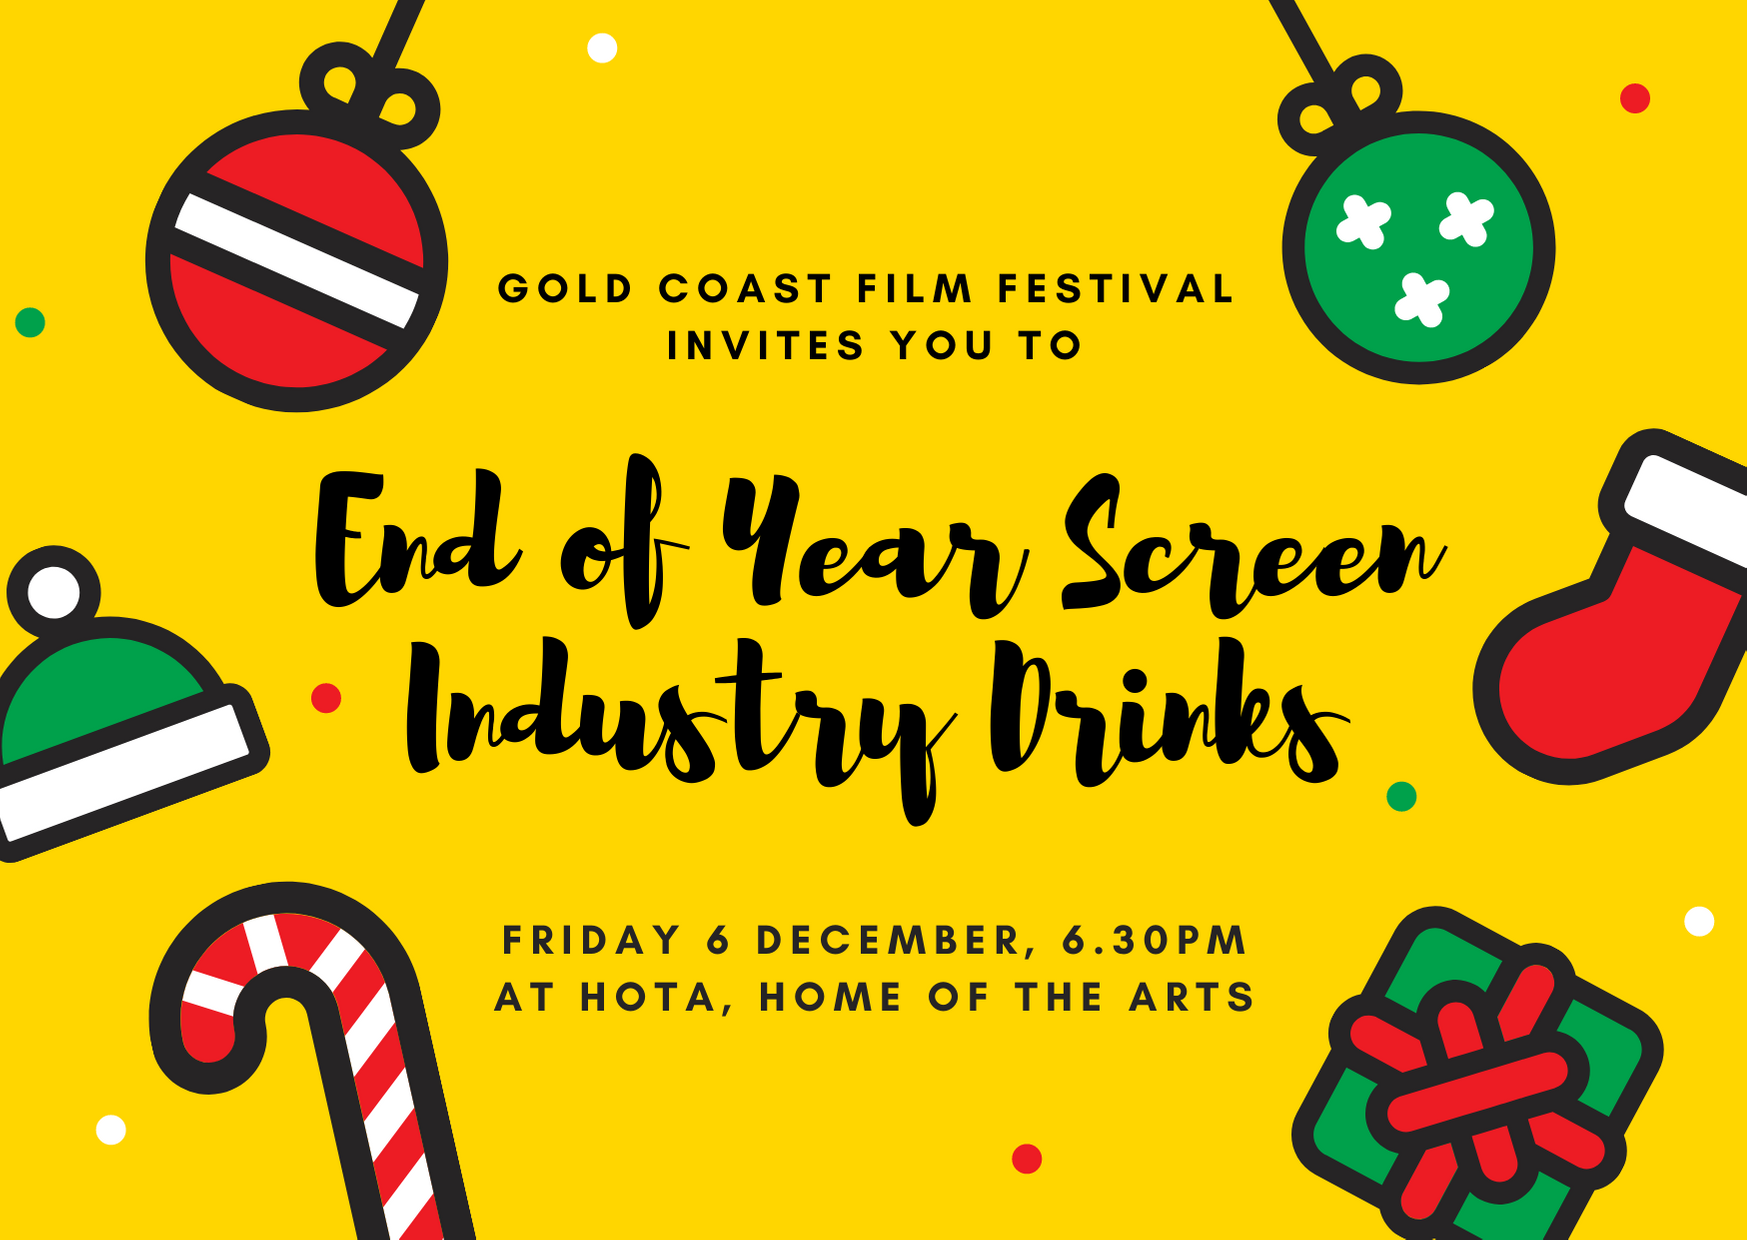 END OF YEAR SCREEN INDUSTRY DRINKS